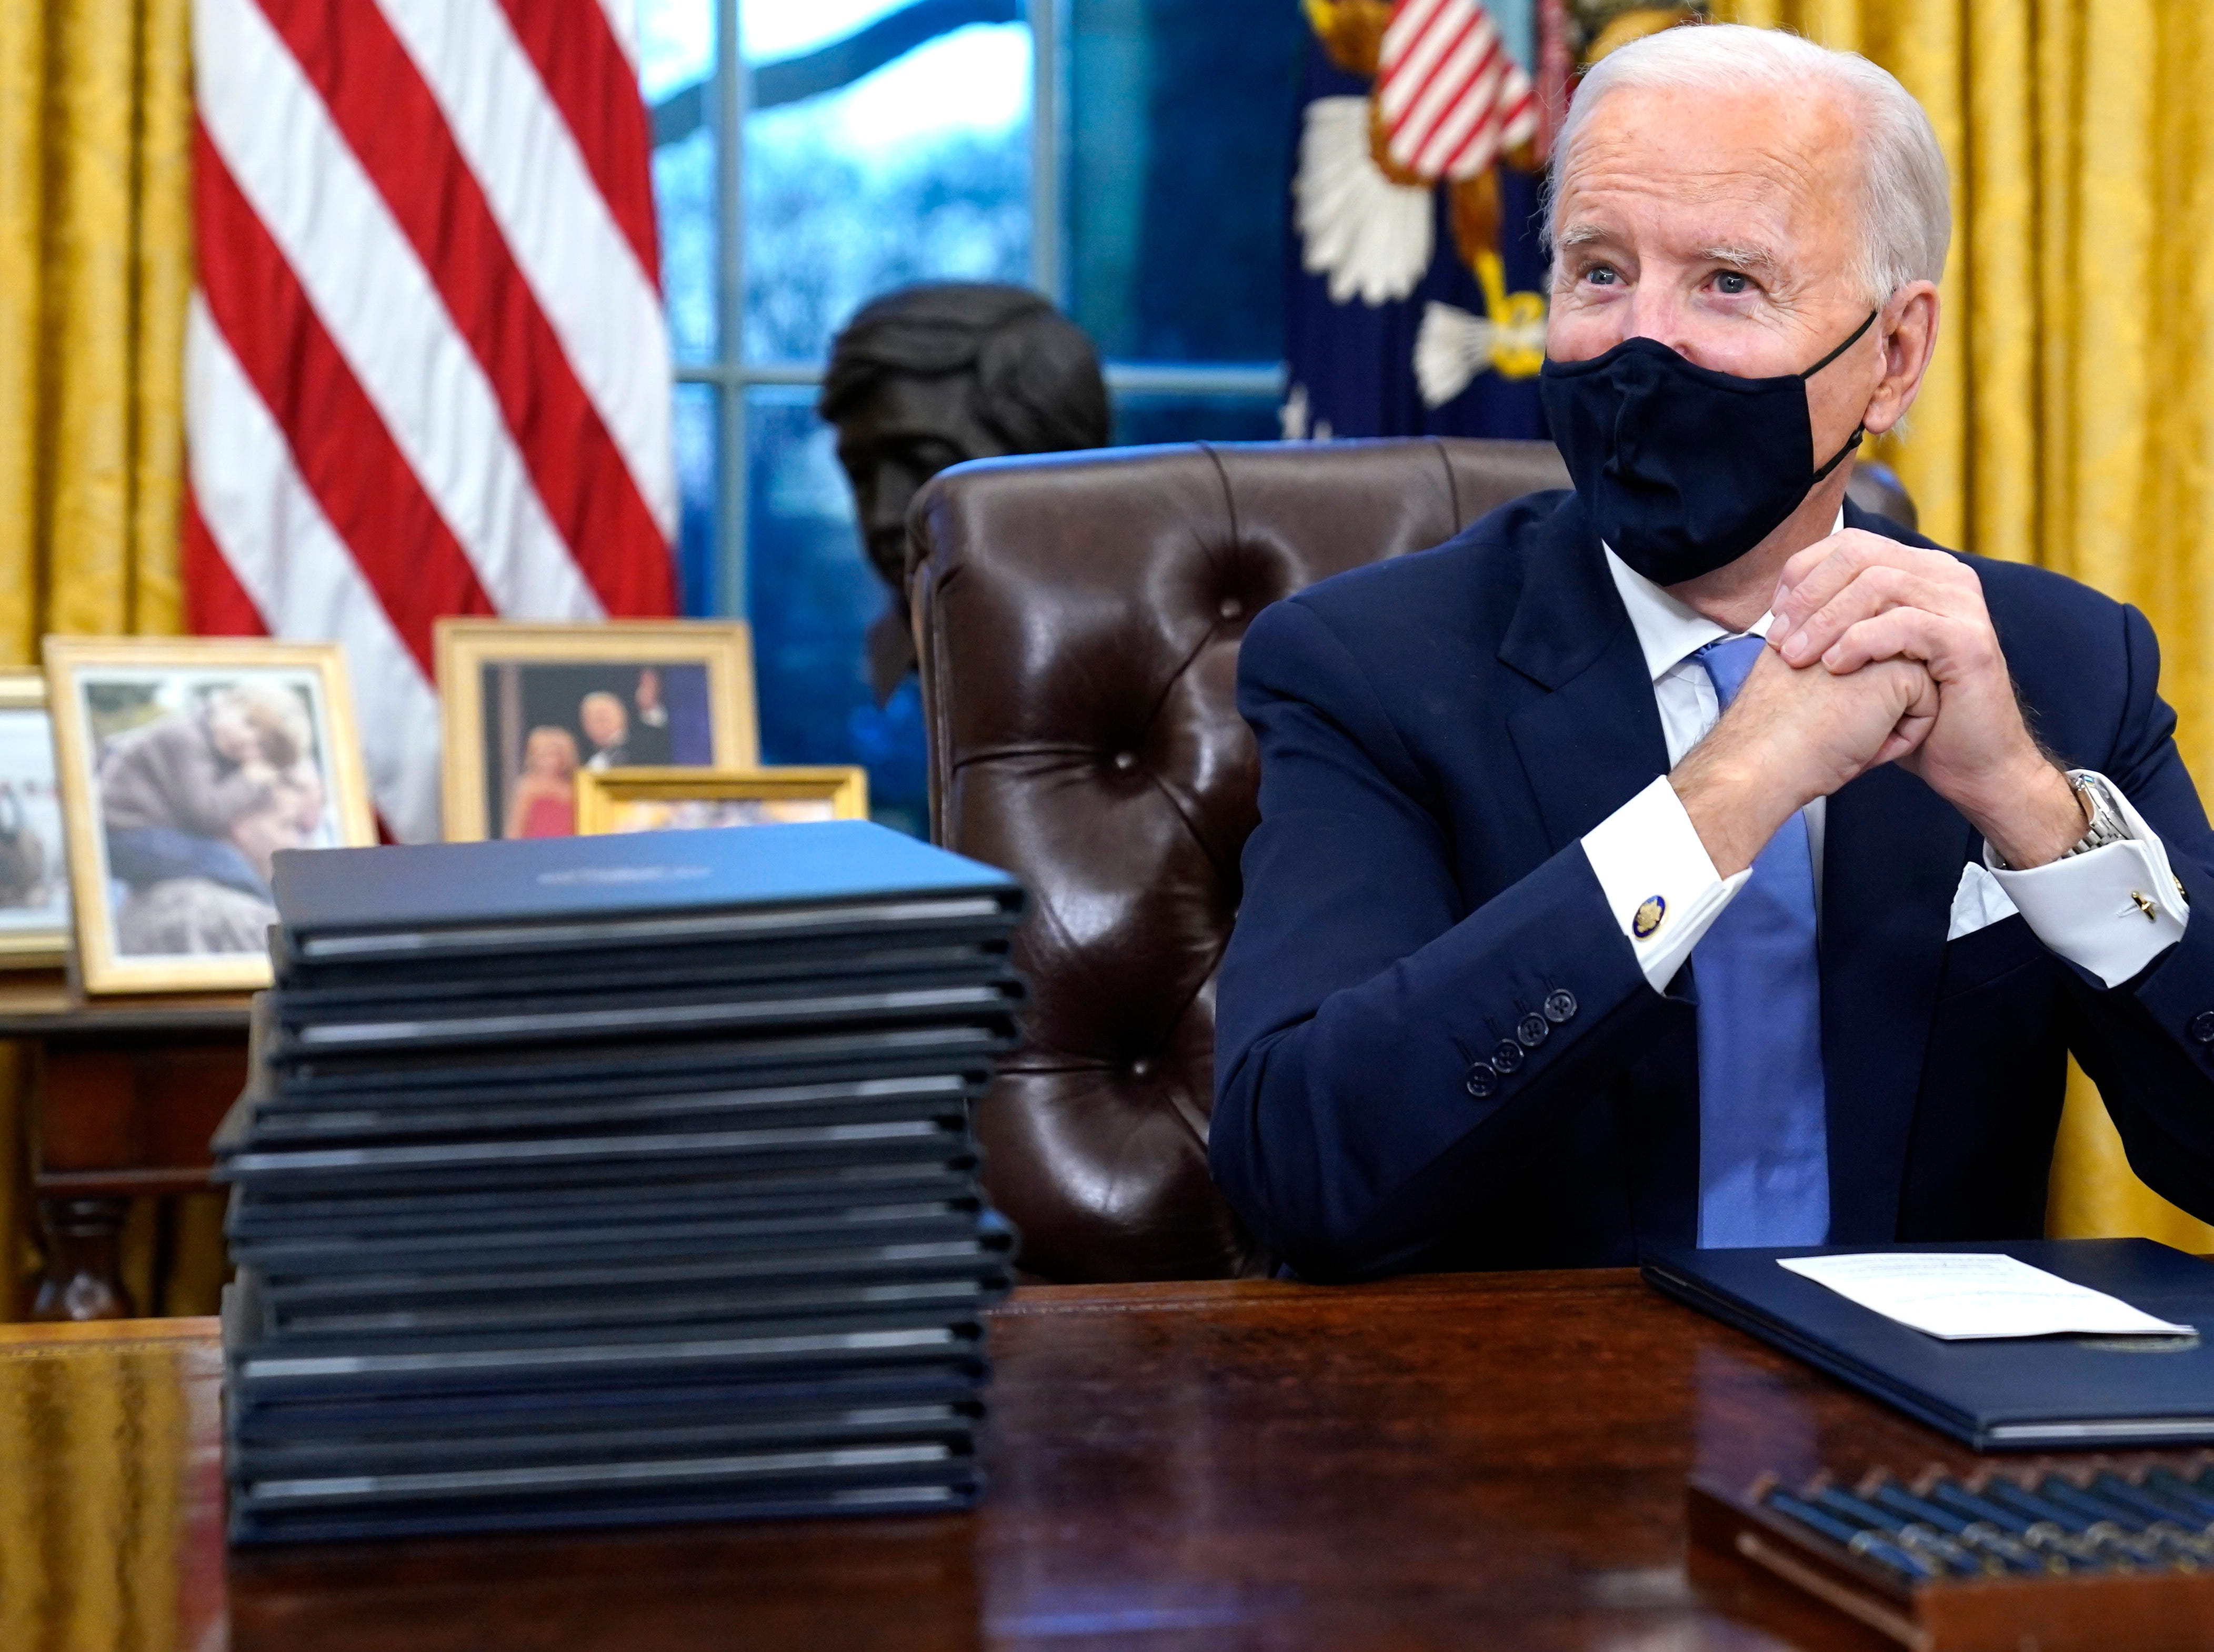 Capital-gain tax rates could nearly double under a Biden proposal. How would that your investments?